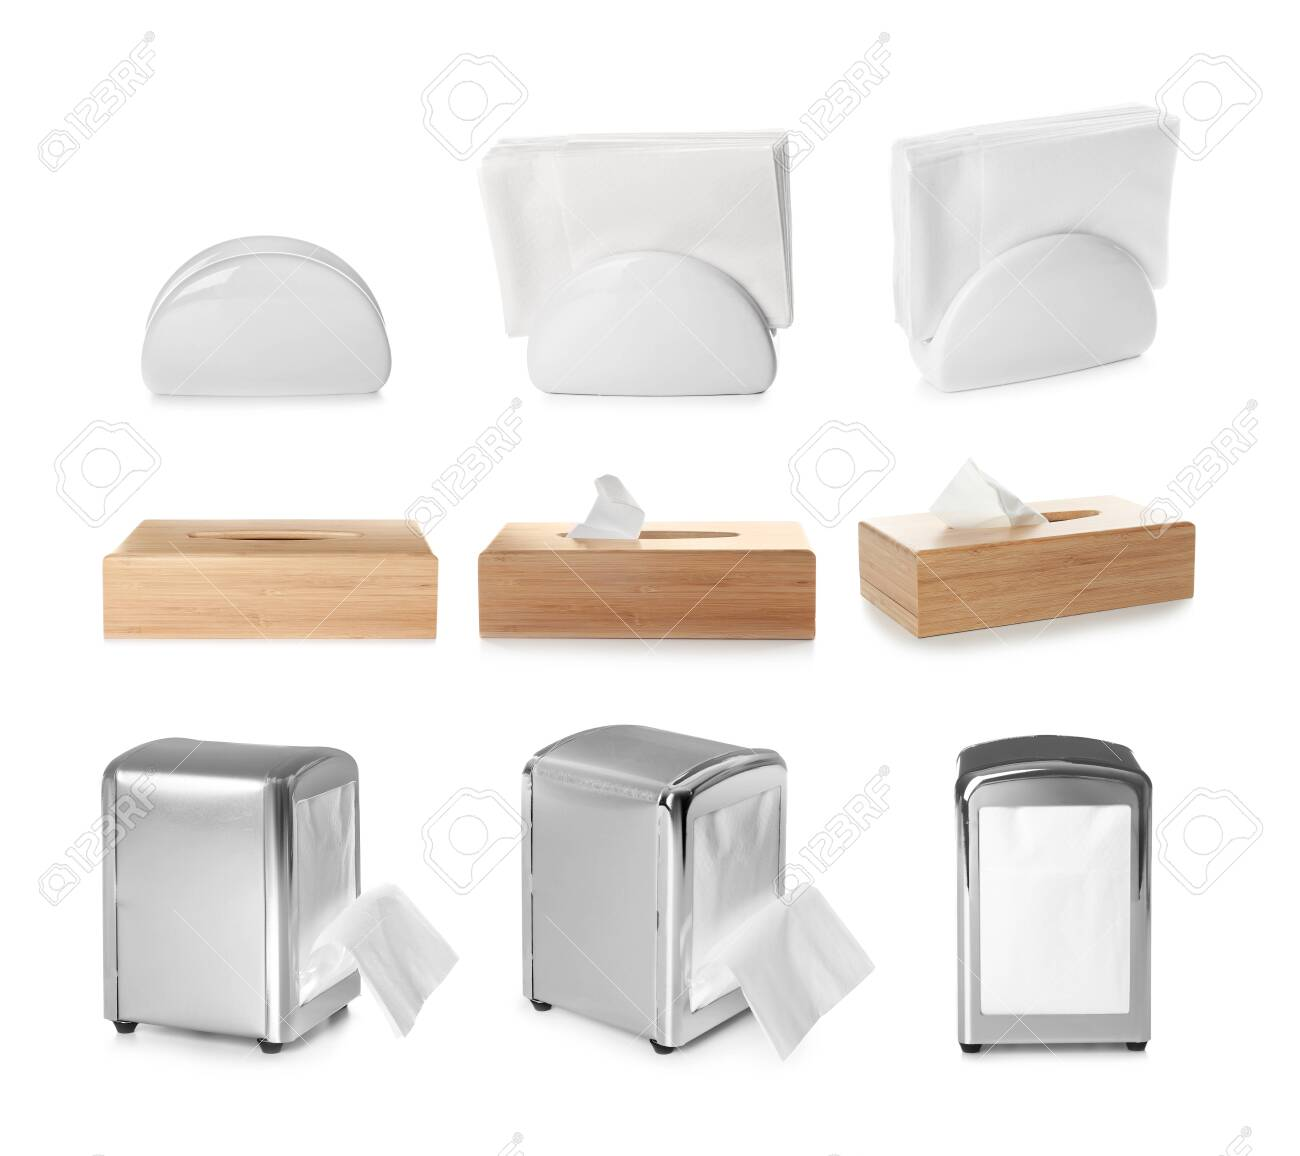 Set Of Different Modern Napkin Holders On White Background Stock Photo Picture And Royalty Free Image Image 147012228